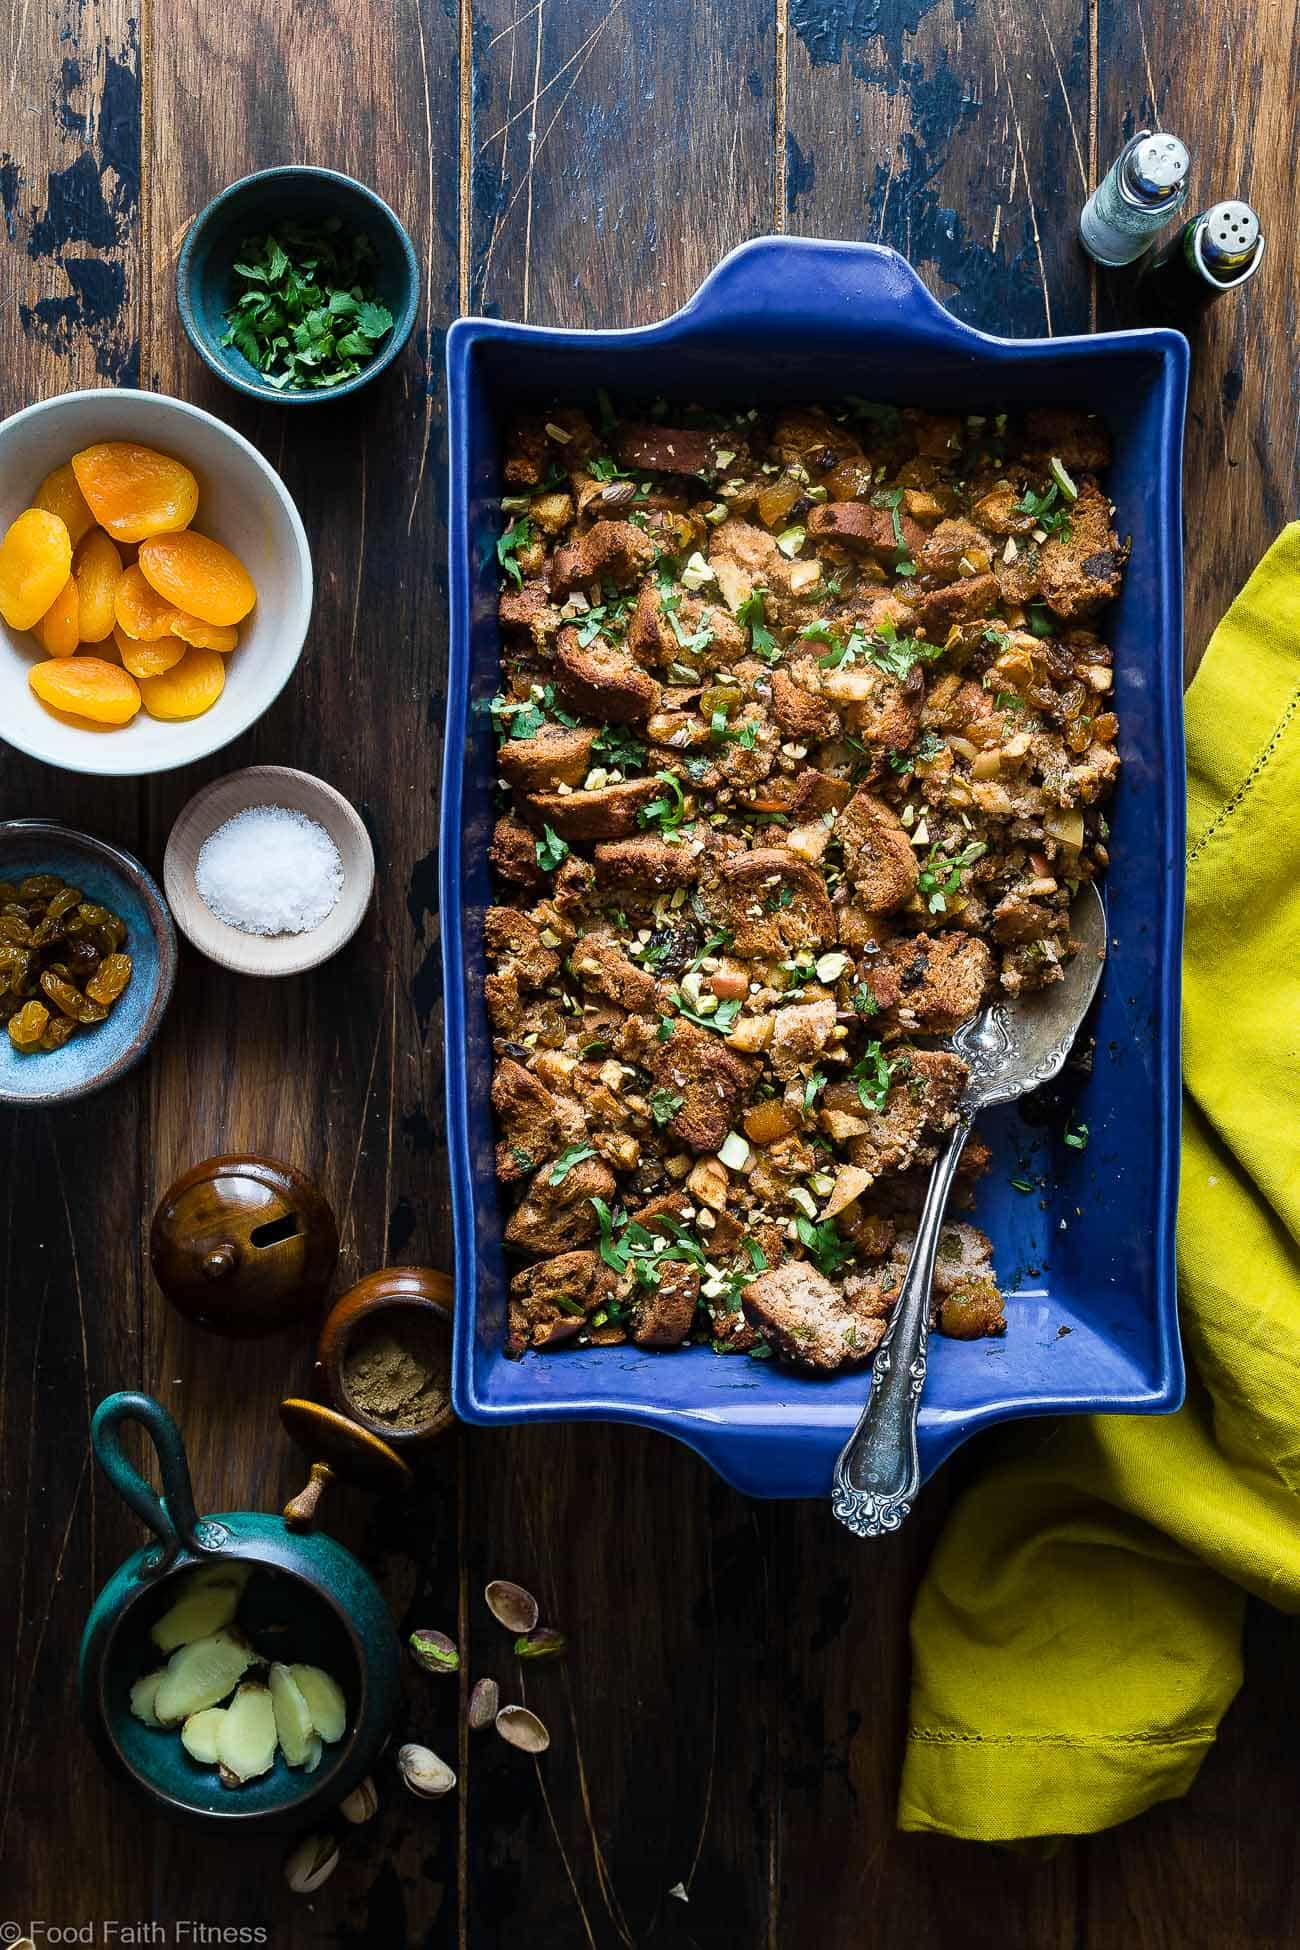 Moroccan Gluten Free Stuffing  -  This simple gluten free stuffing is made with spicy-sweet Moroccan flavors, apples and dried fruit! It's a healthy, dairy-free twist on a classic side dish that's perfect for Thanksgiving! | Foodfaithfitness.com | @FoodFaithFit